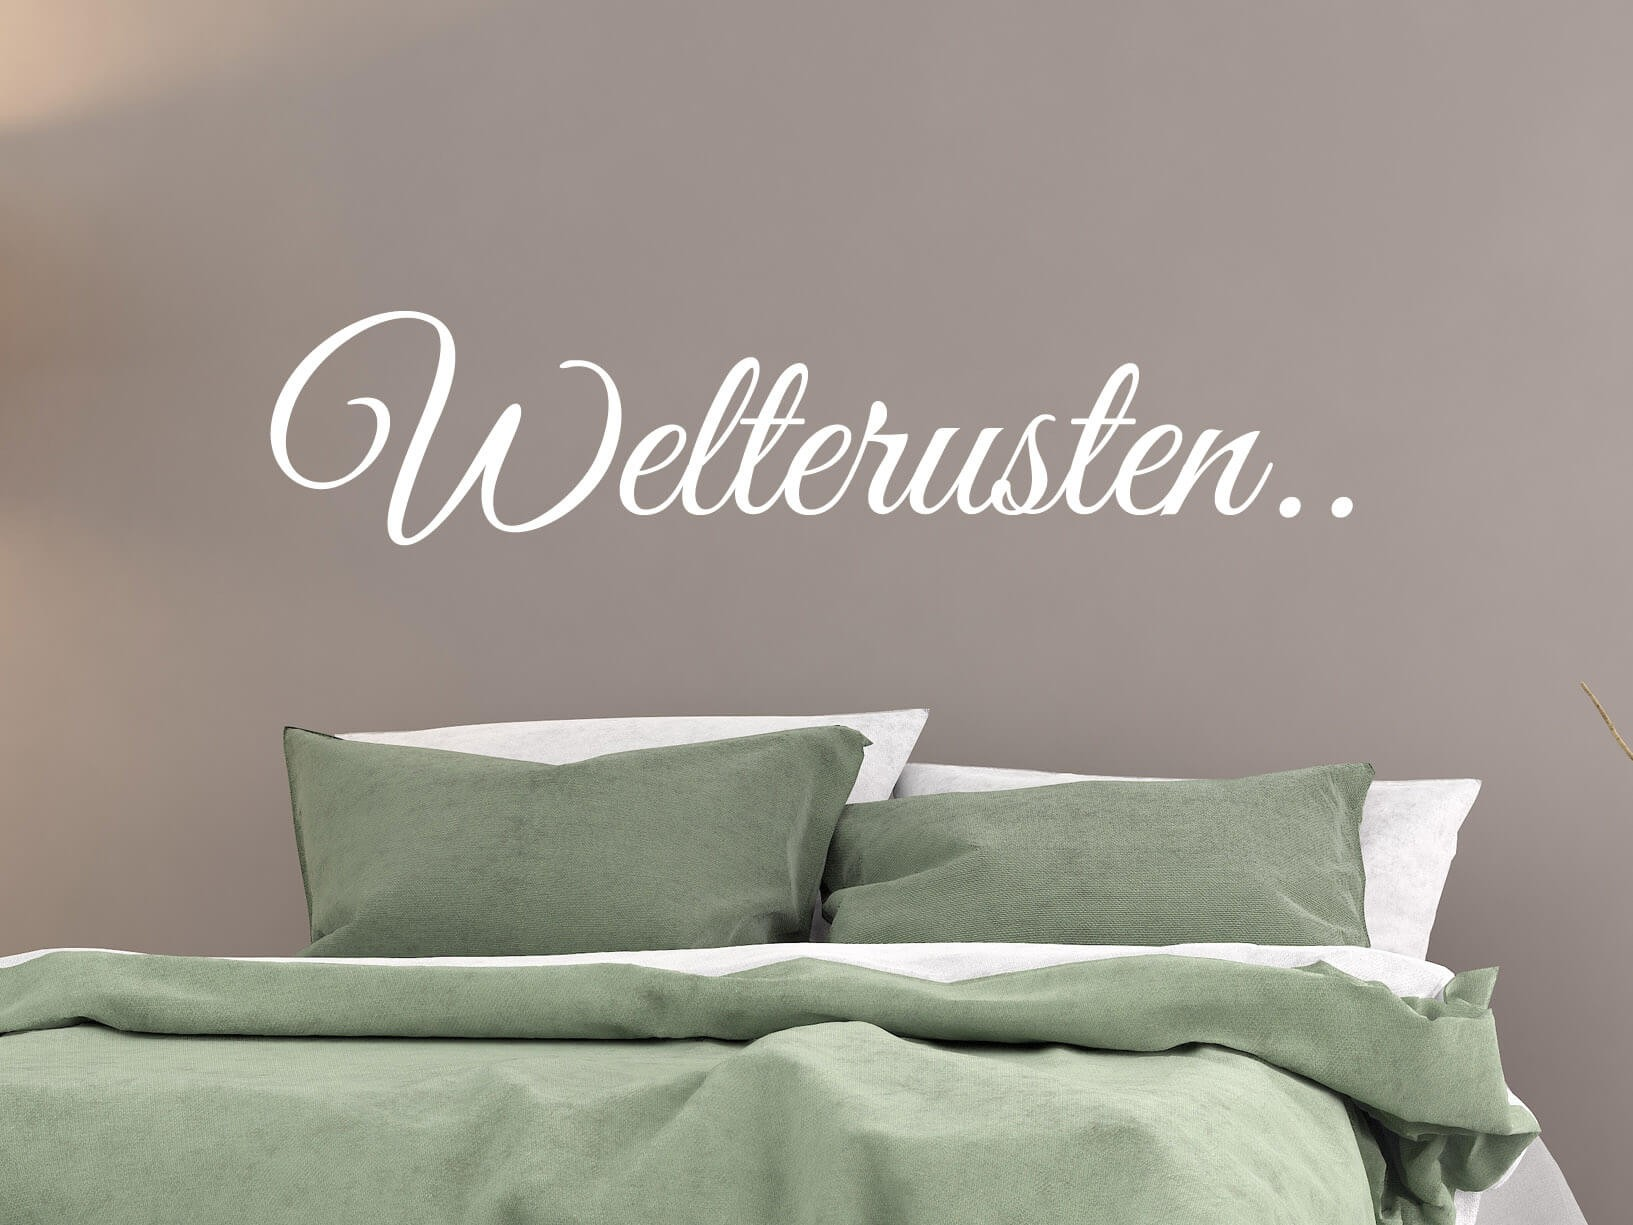 muursticker quotwelterustenquot